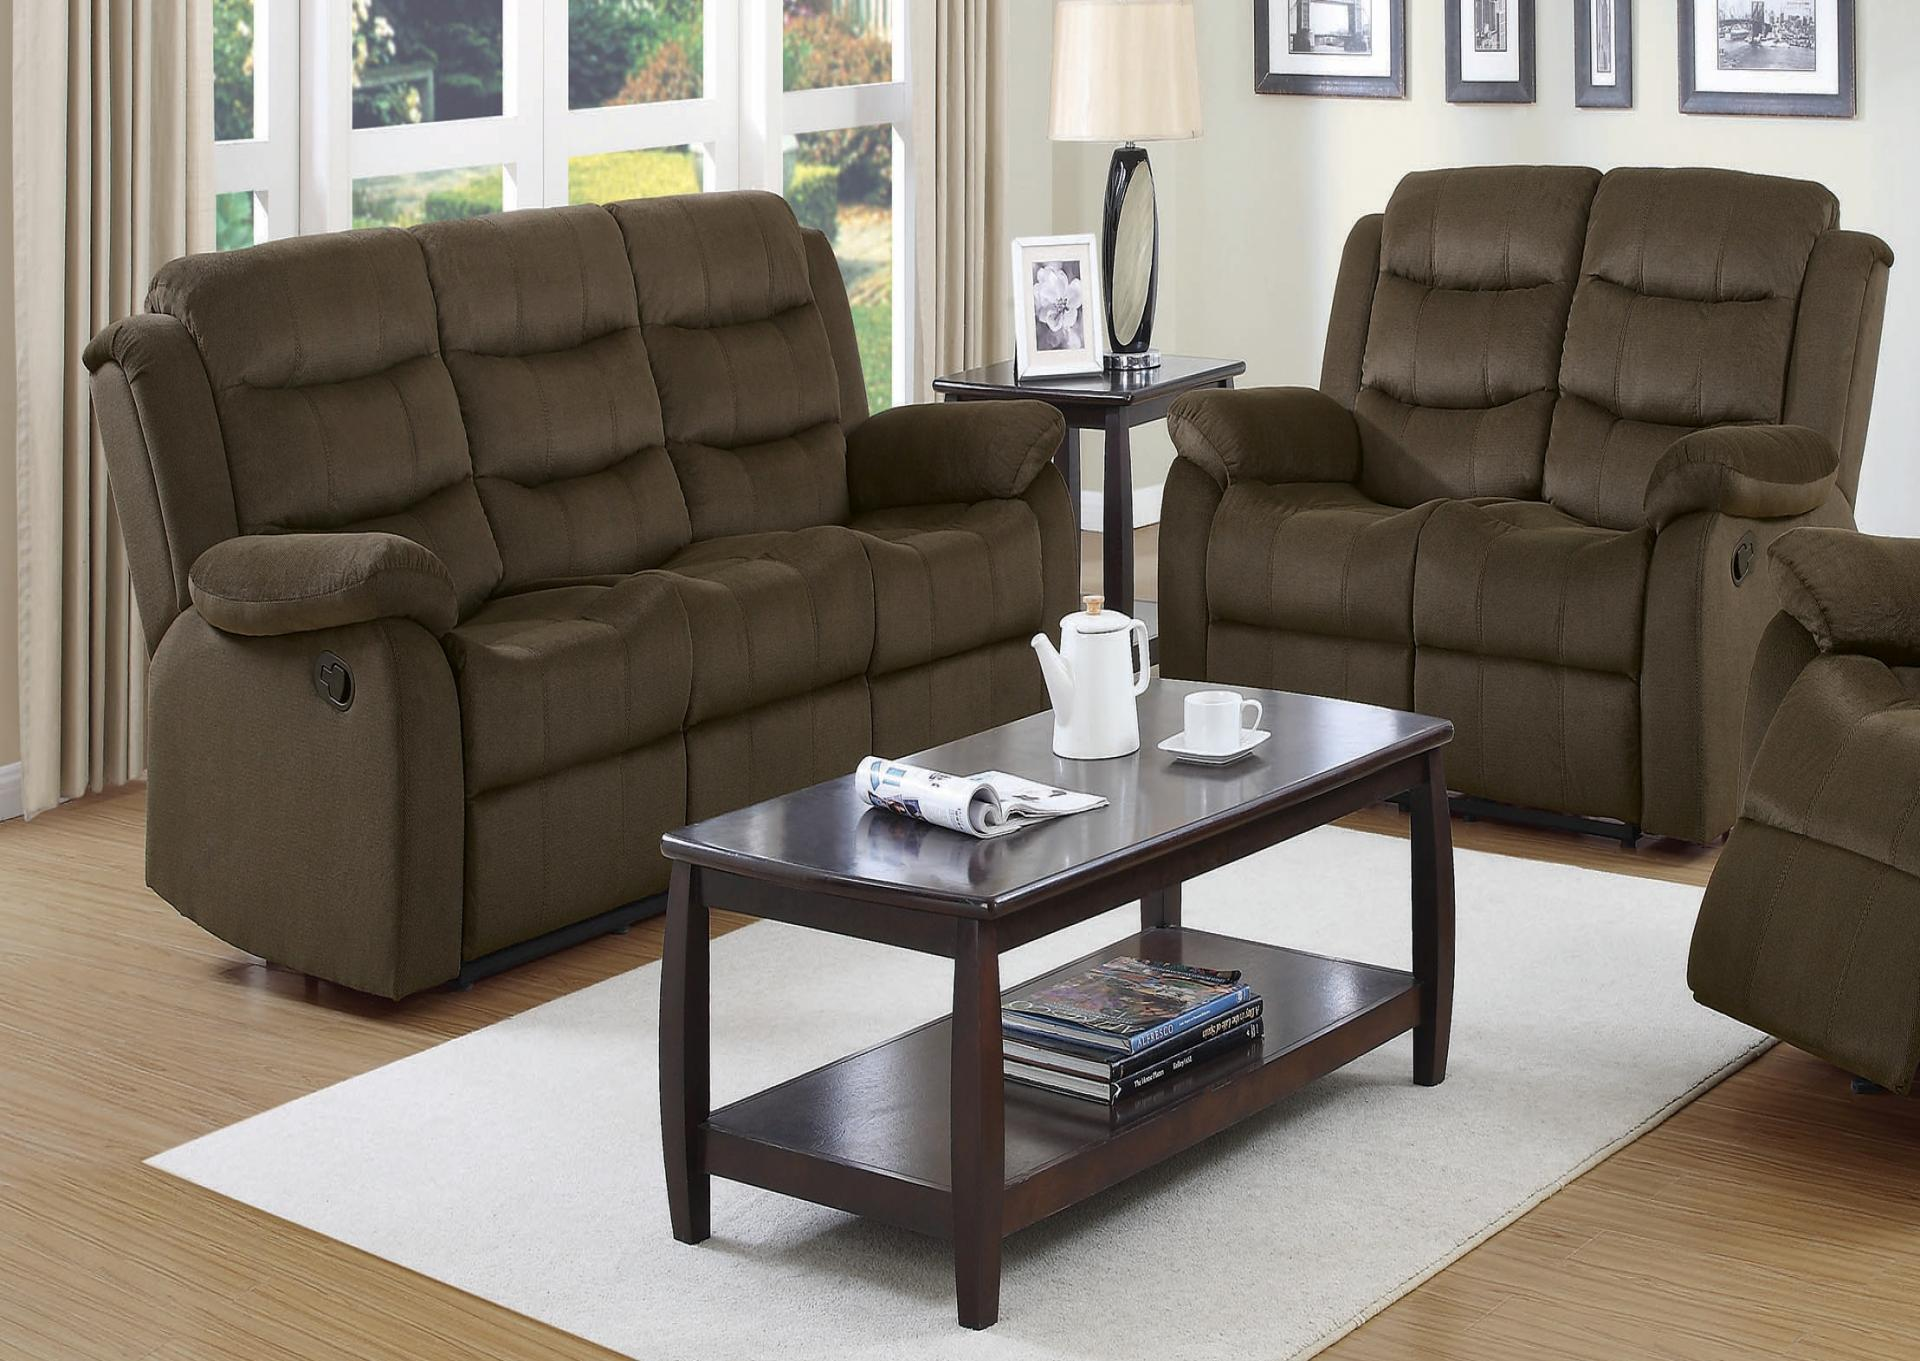 Sofa and Loveseat with 2 recliners in each